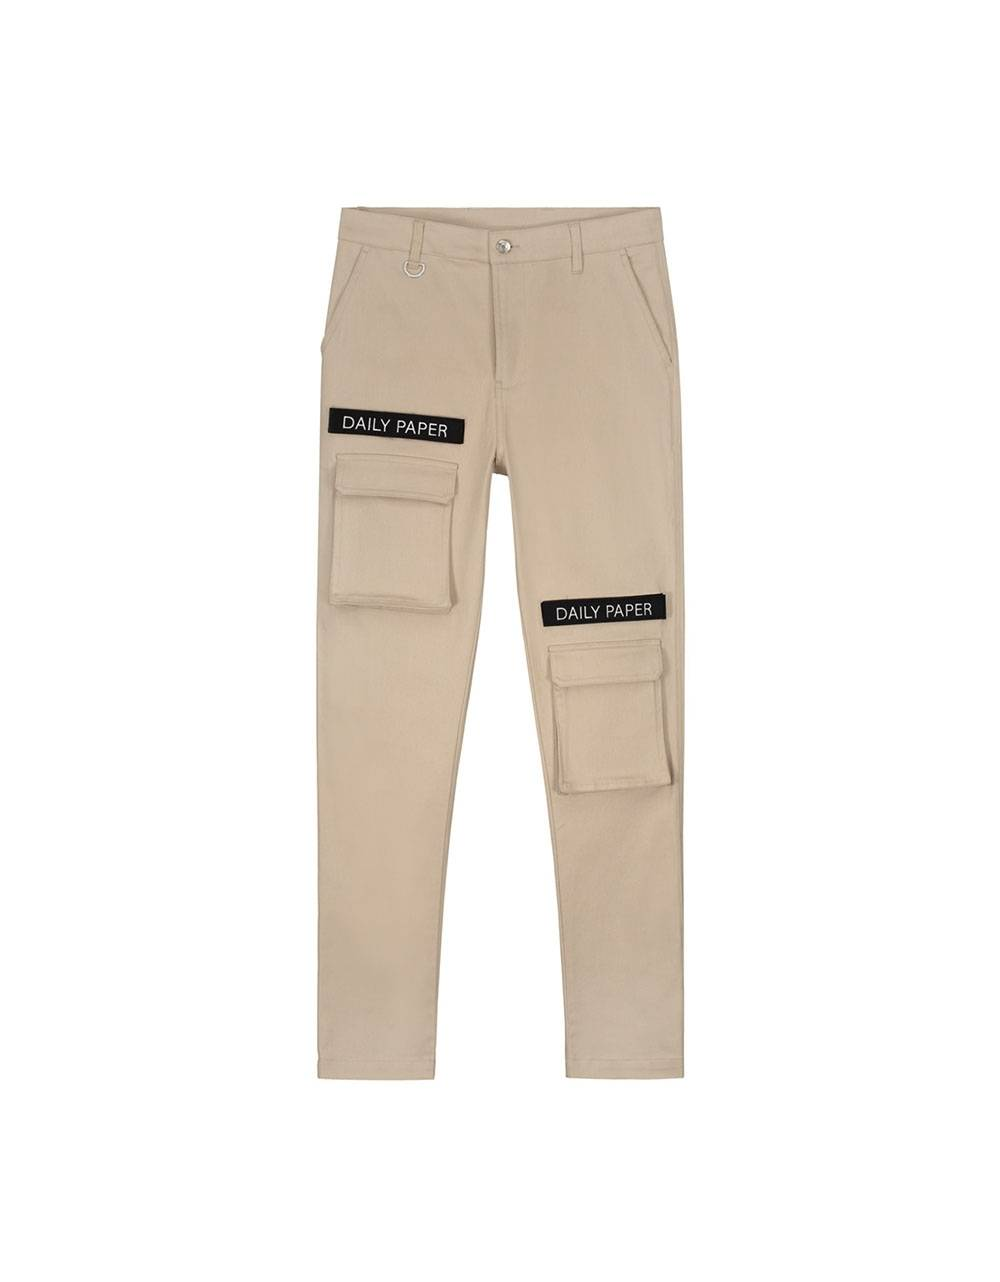 Daily Paper cargo pants - sand DAILY PAPER Pant 89,34€